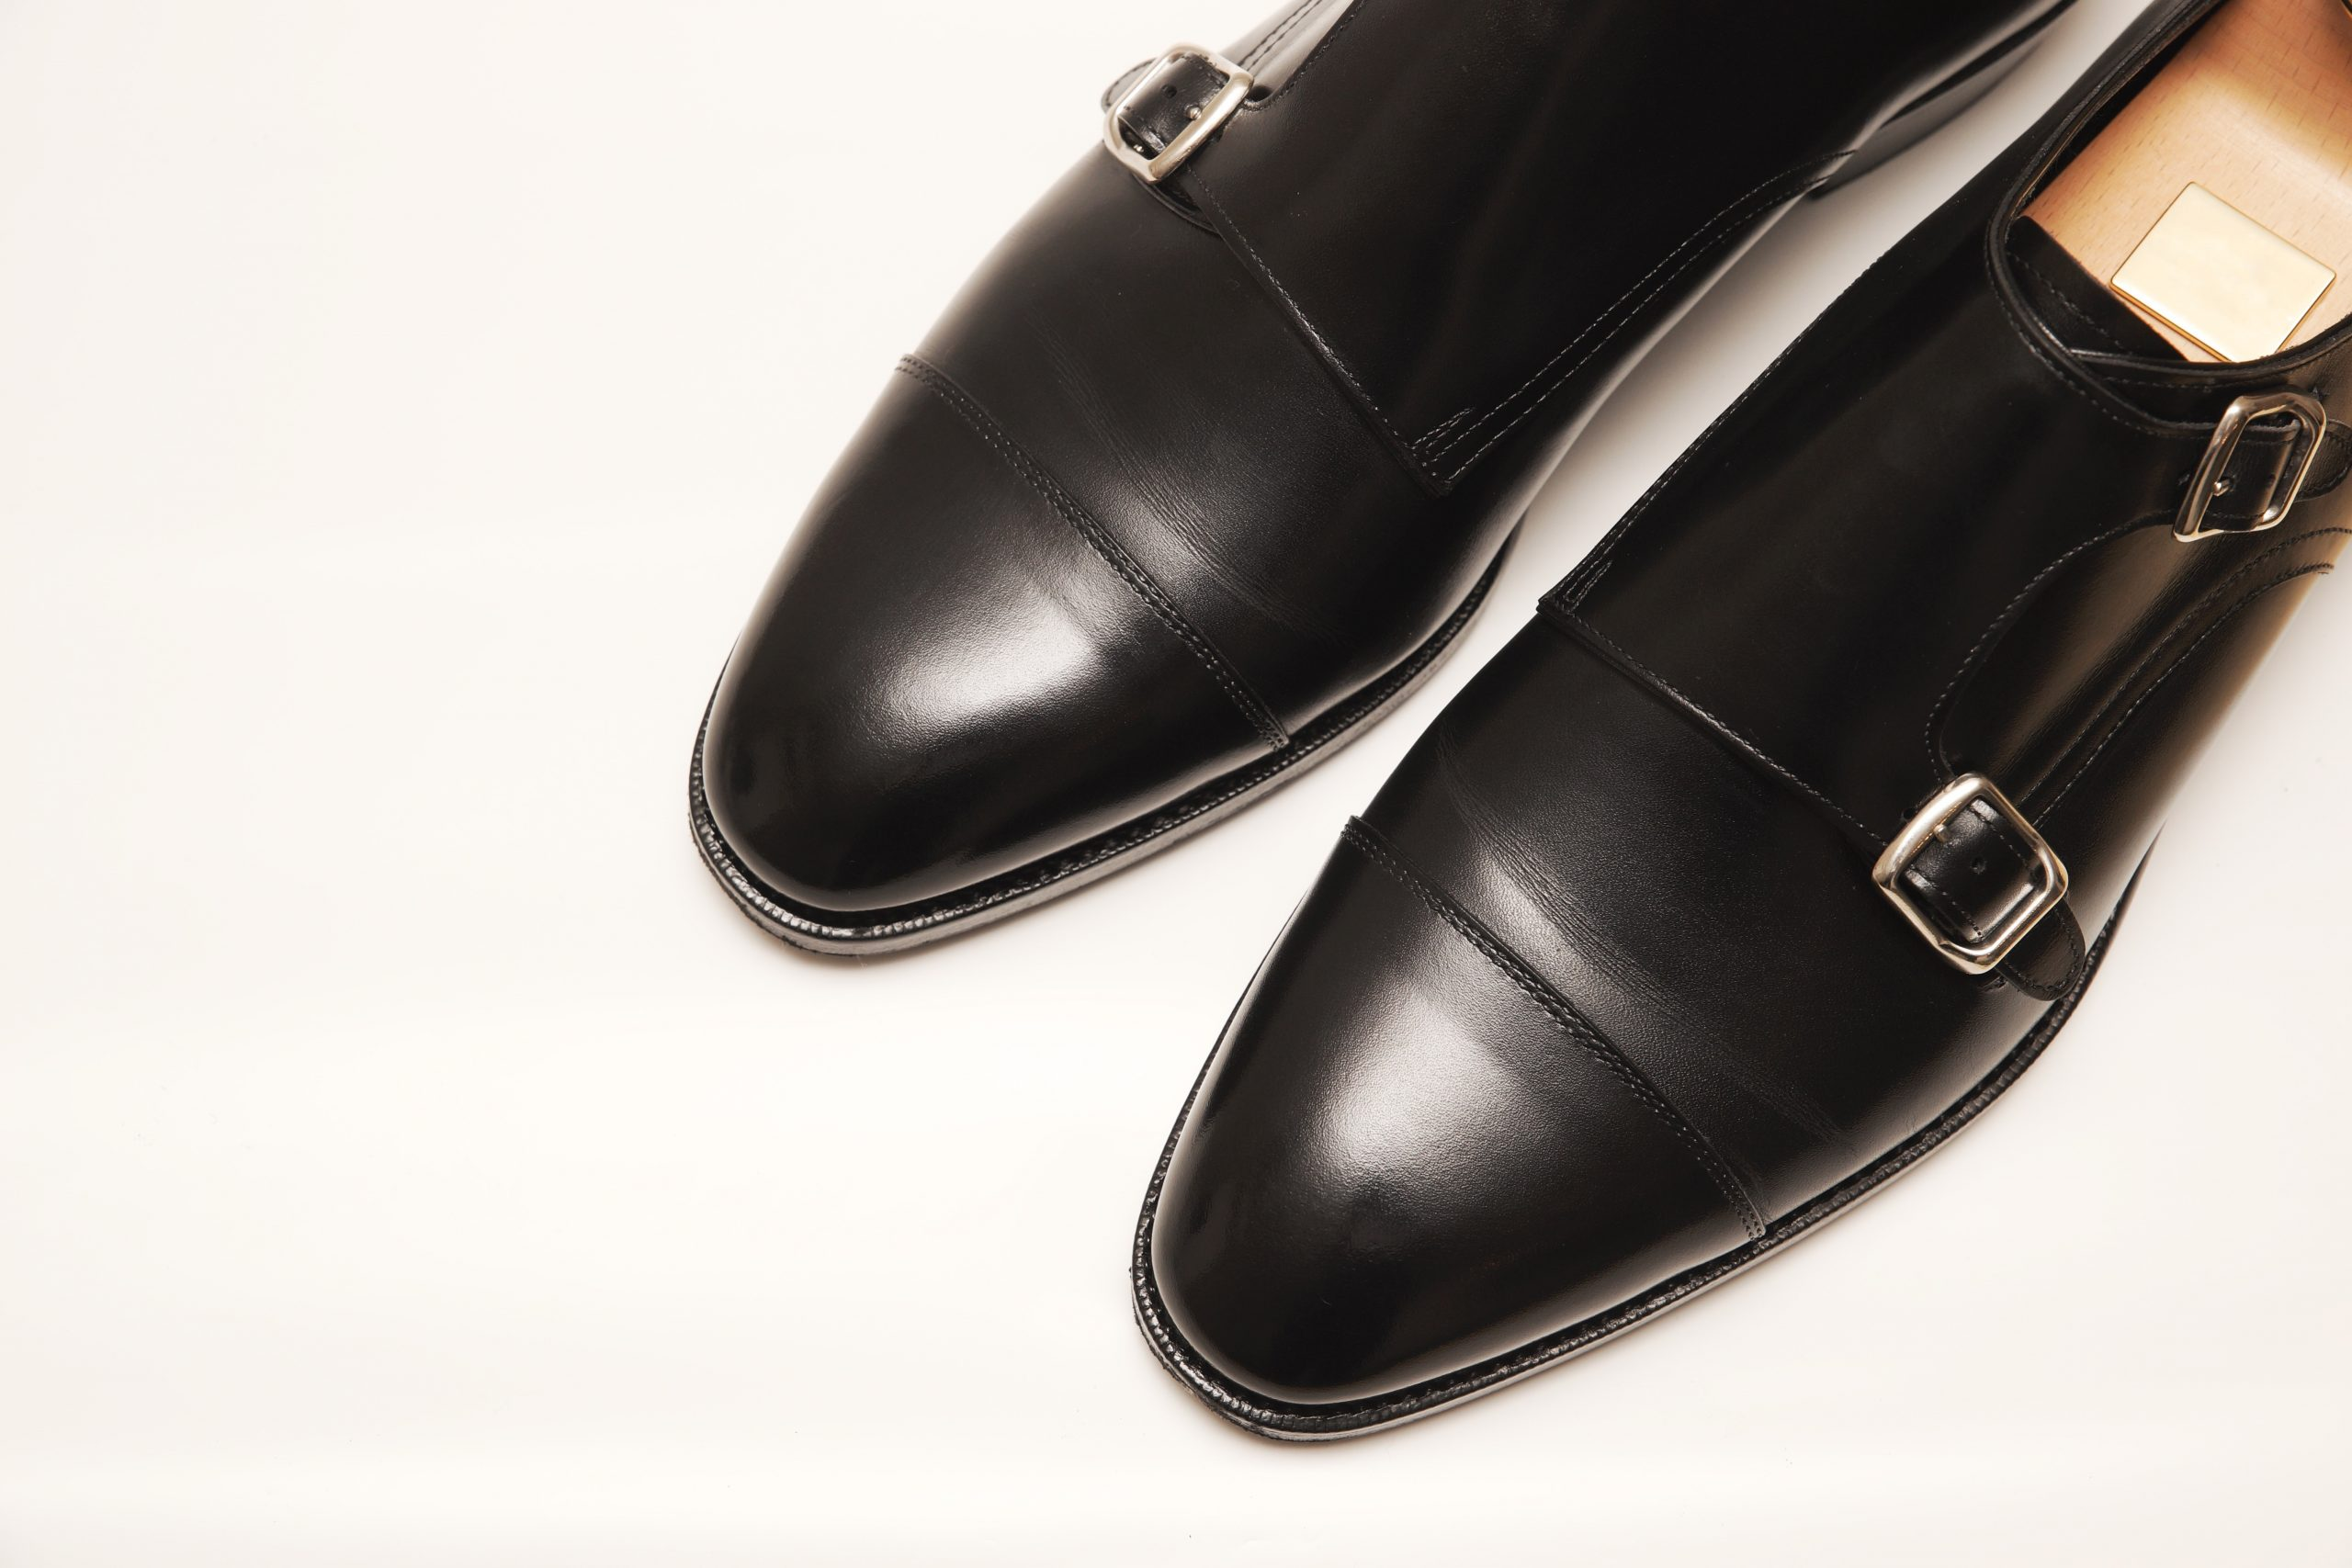 Black,Leather,Shoes,Photographed,On,A,White,Background.